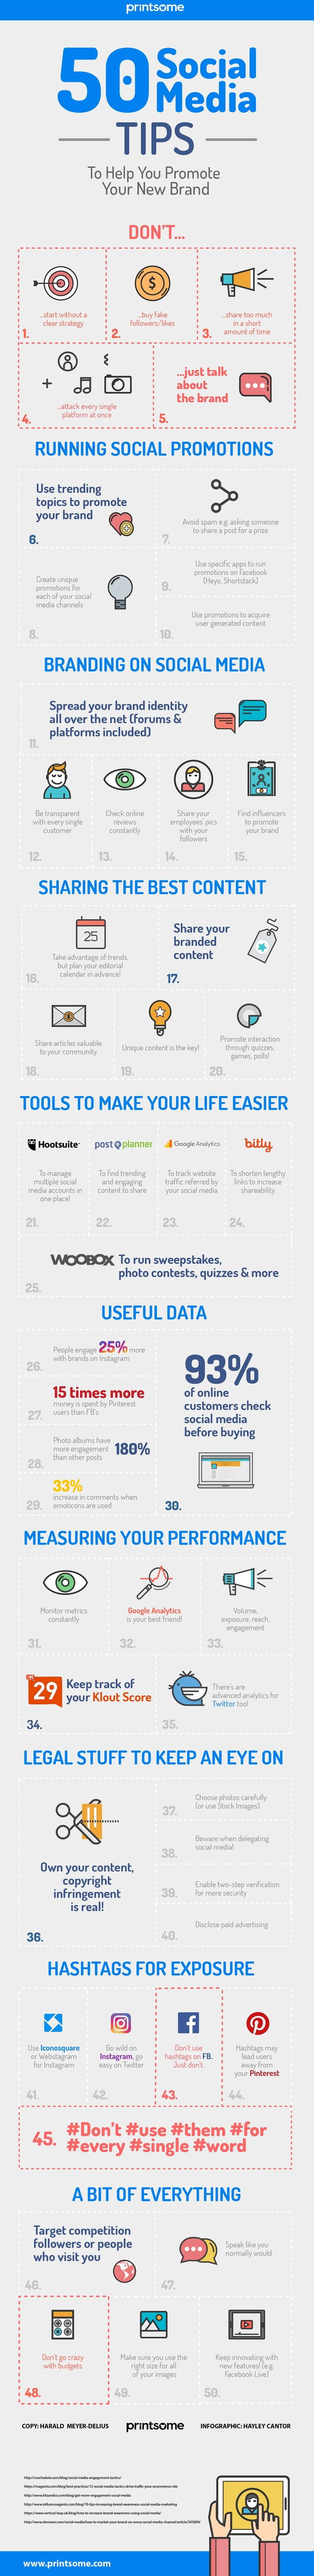 50 Social Media Tips to Help You Promote Your New Brand - infographic